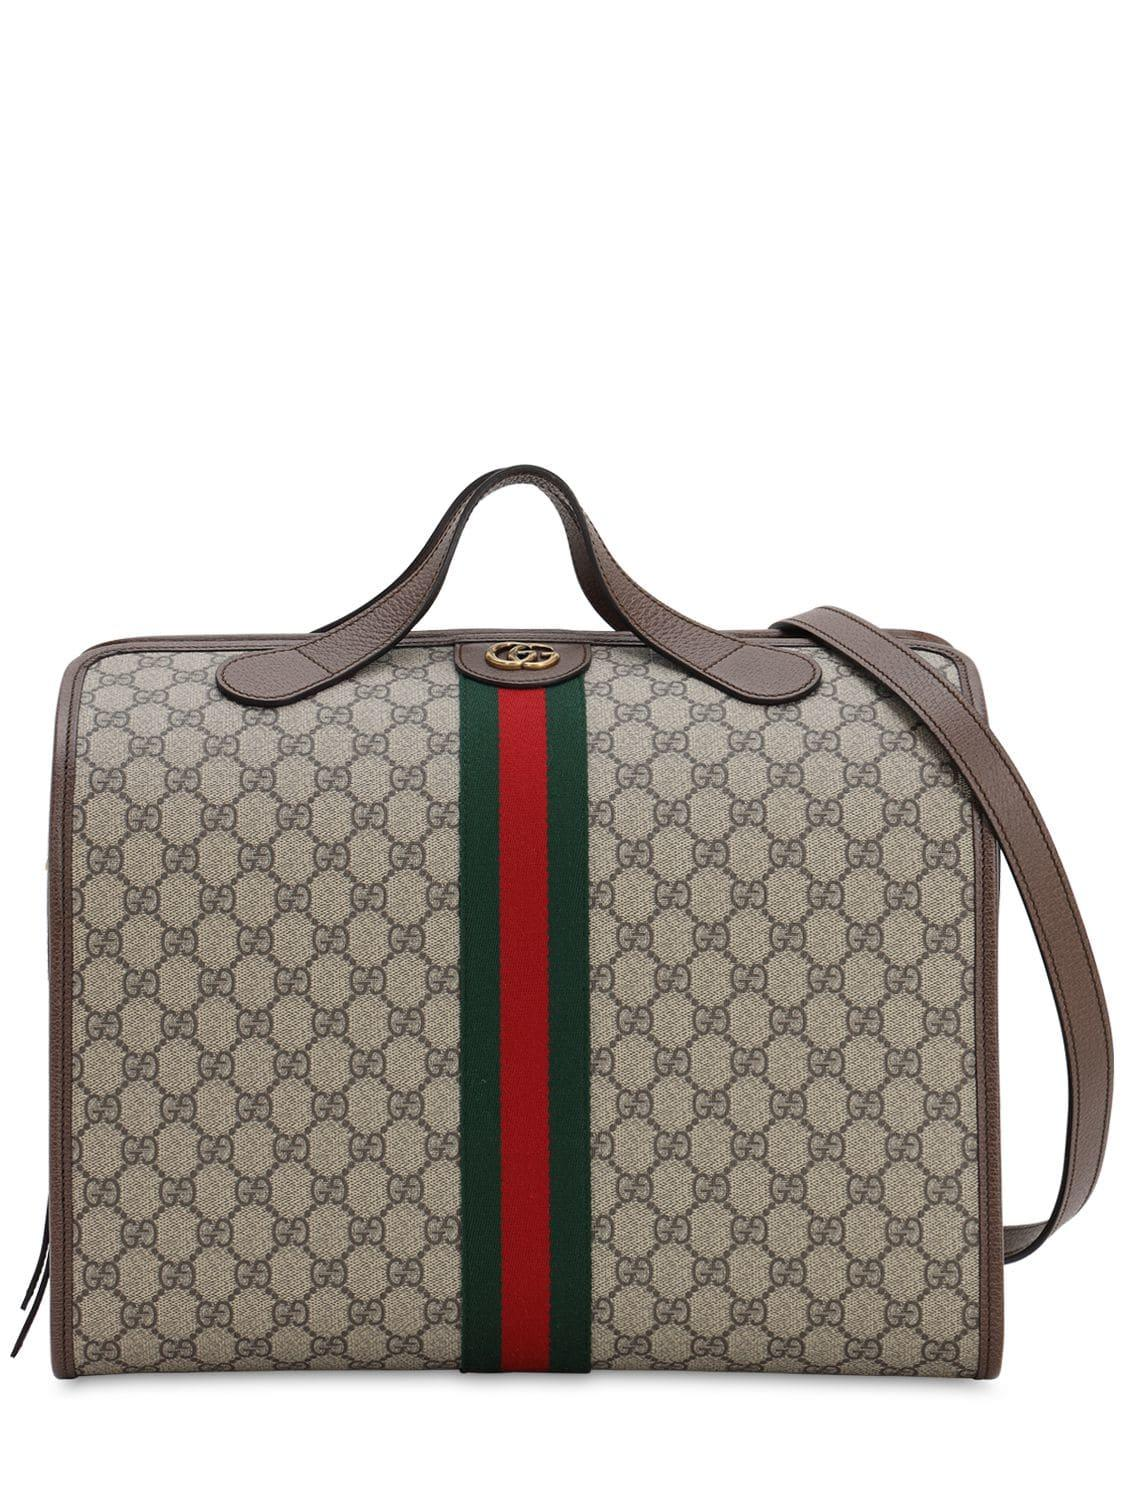 9a6a9109a498 Gucci Ophidia Gg Supreme Holdall for Men - Save 21% - Lyst